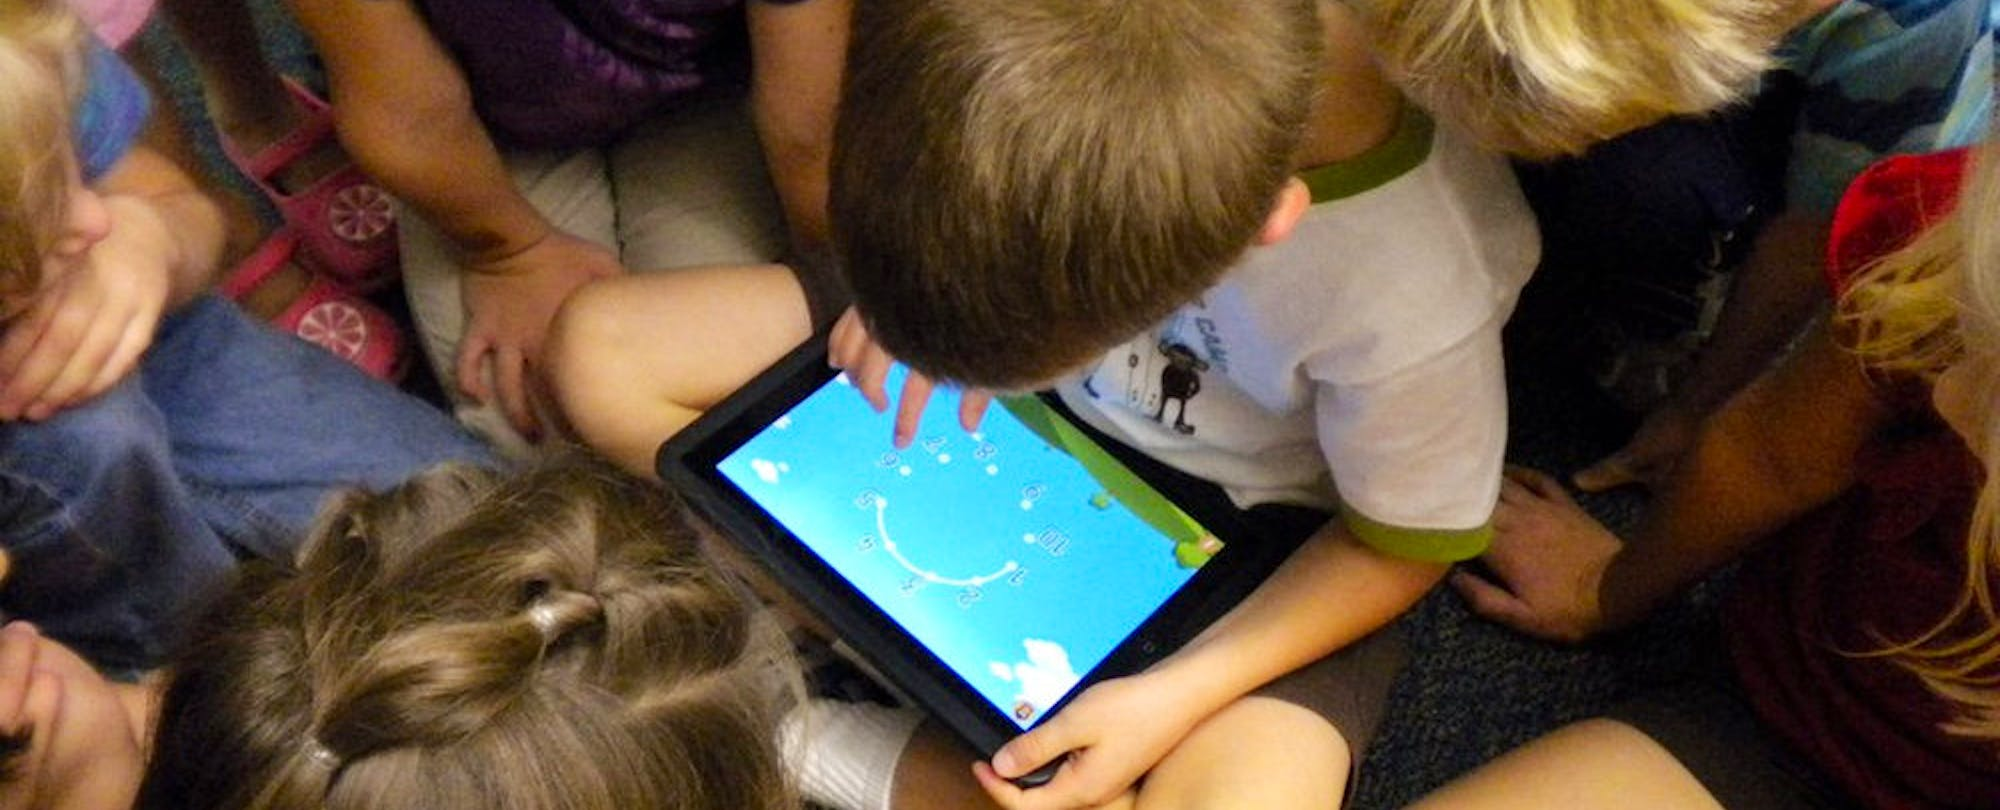 Why I Still Believe in the iPad's Positive Impact on Classrooms